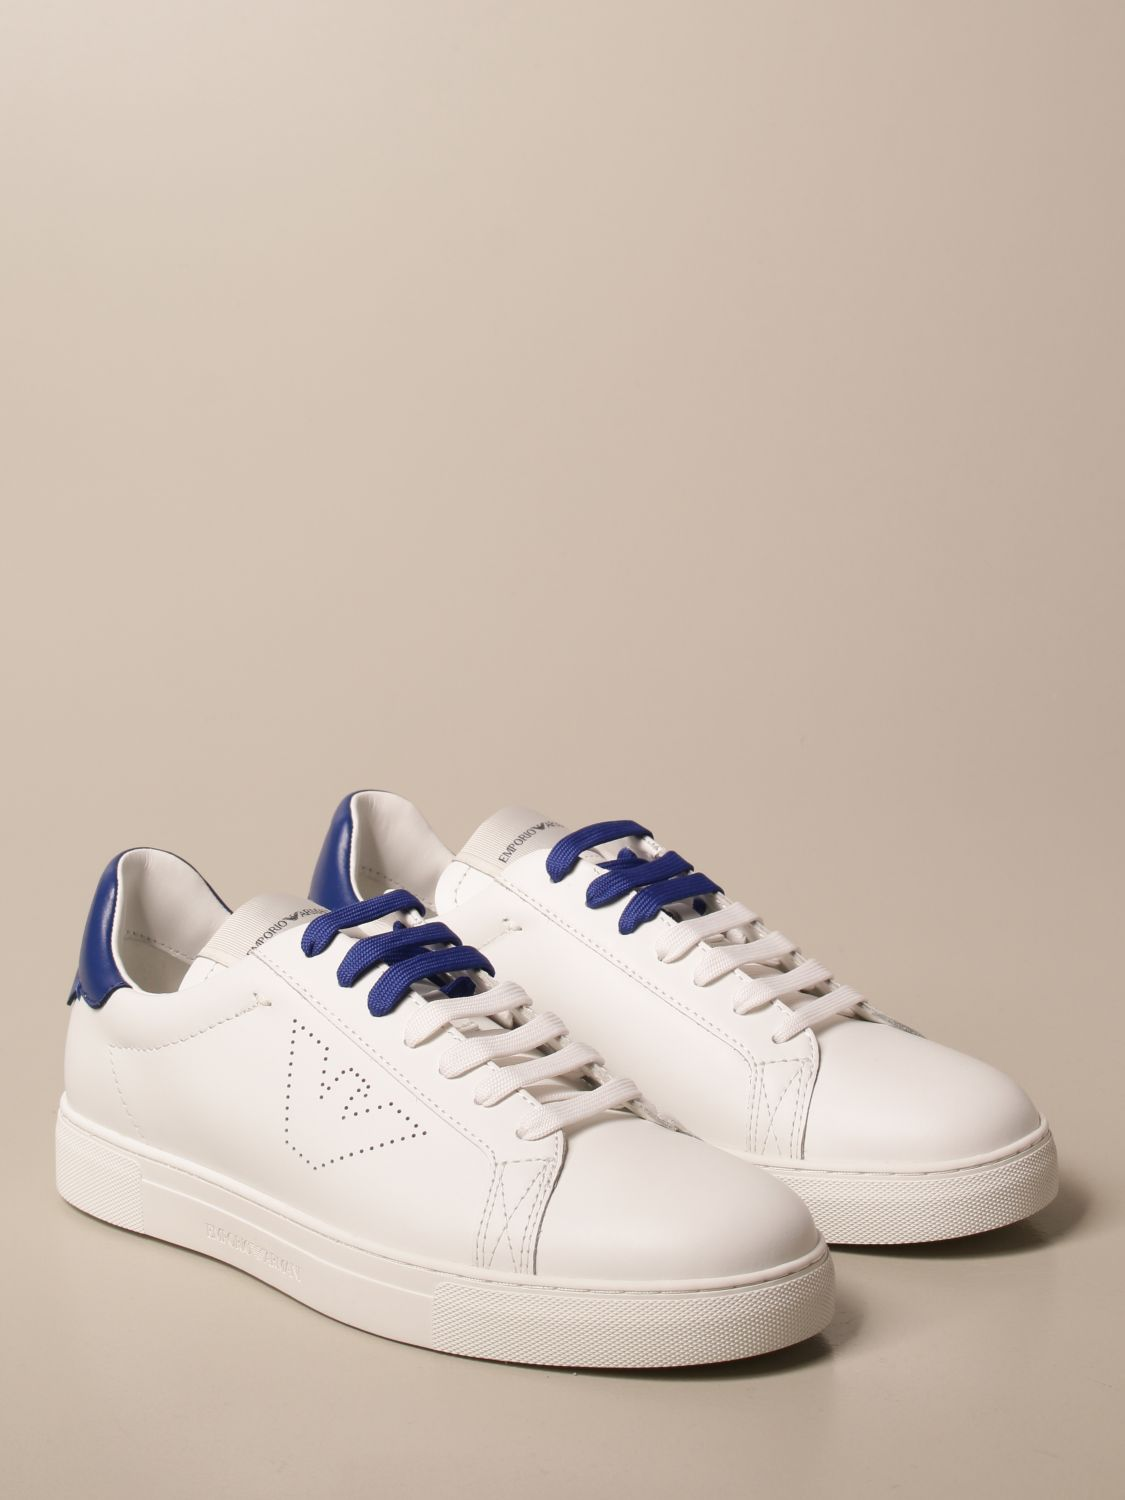 Sneakers Emporio Armani: Emporio Armani sneakers in leather white 2 2